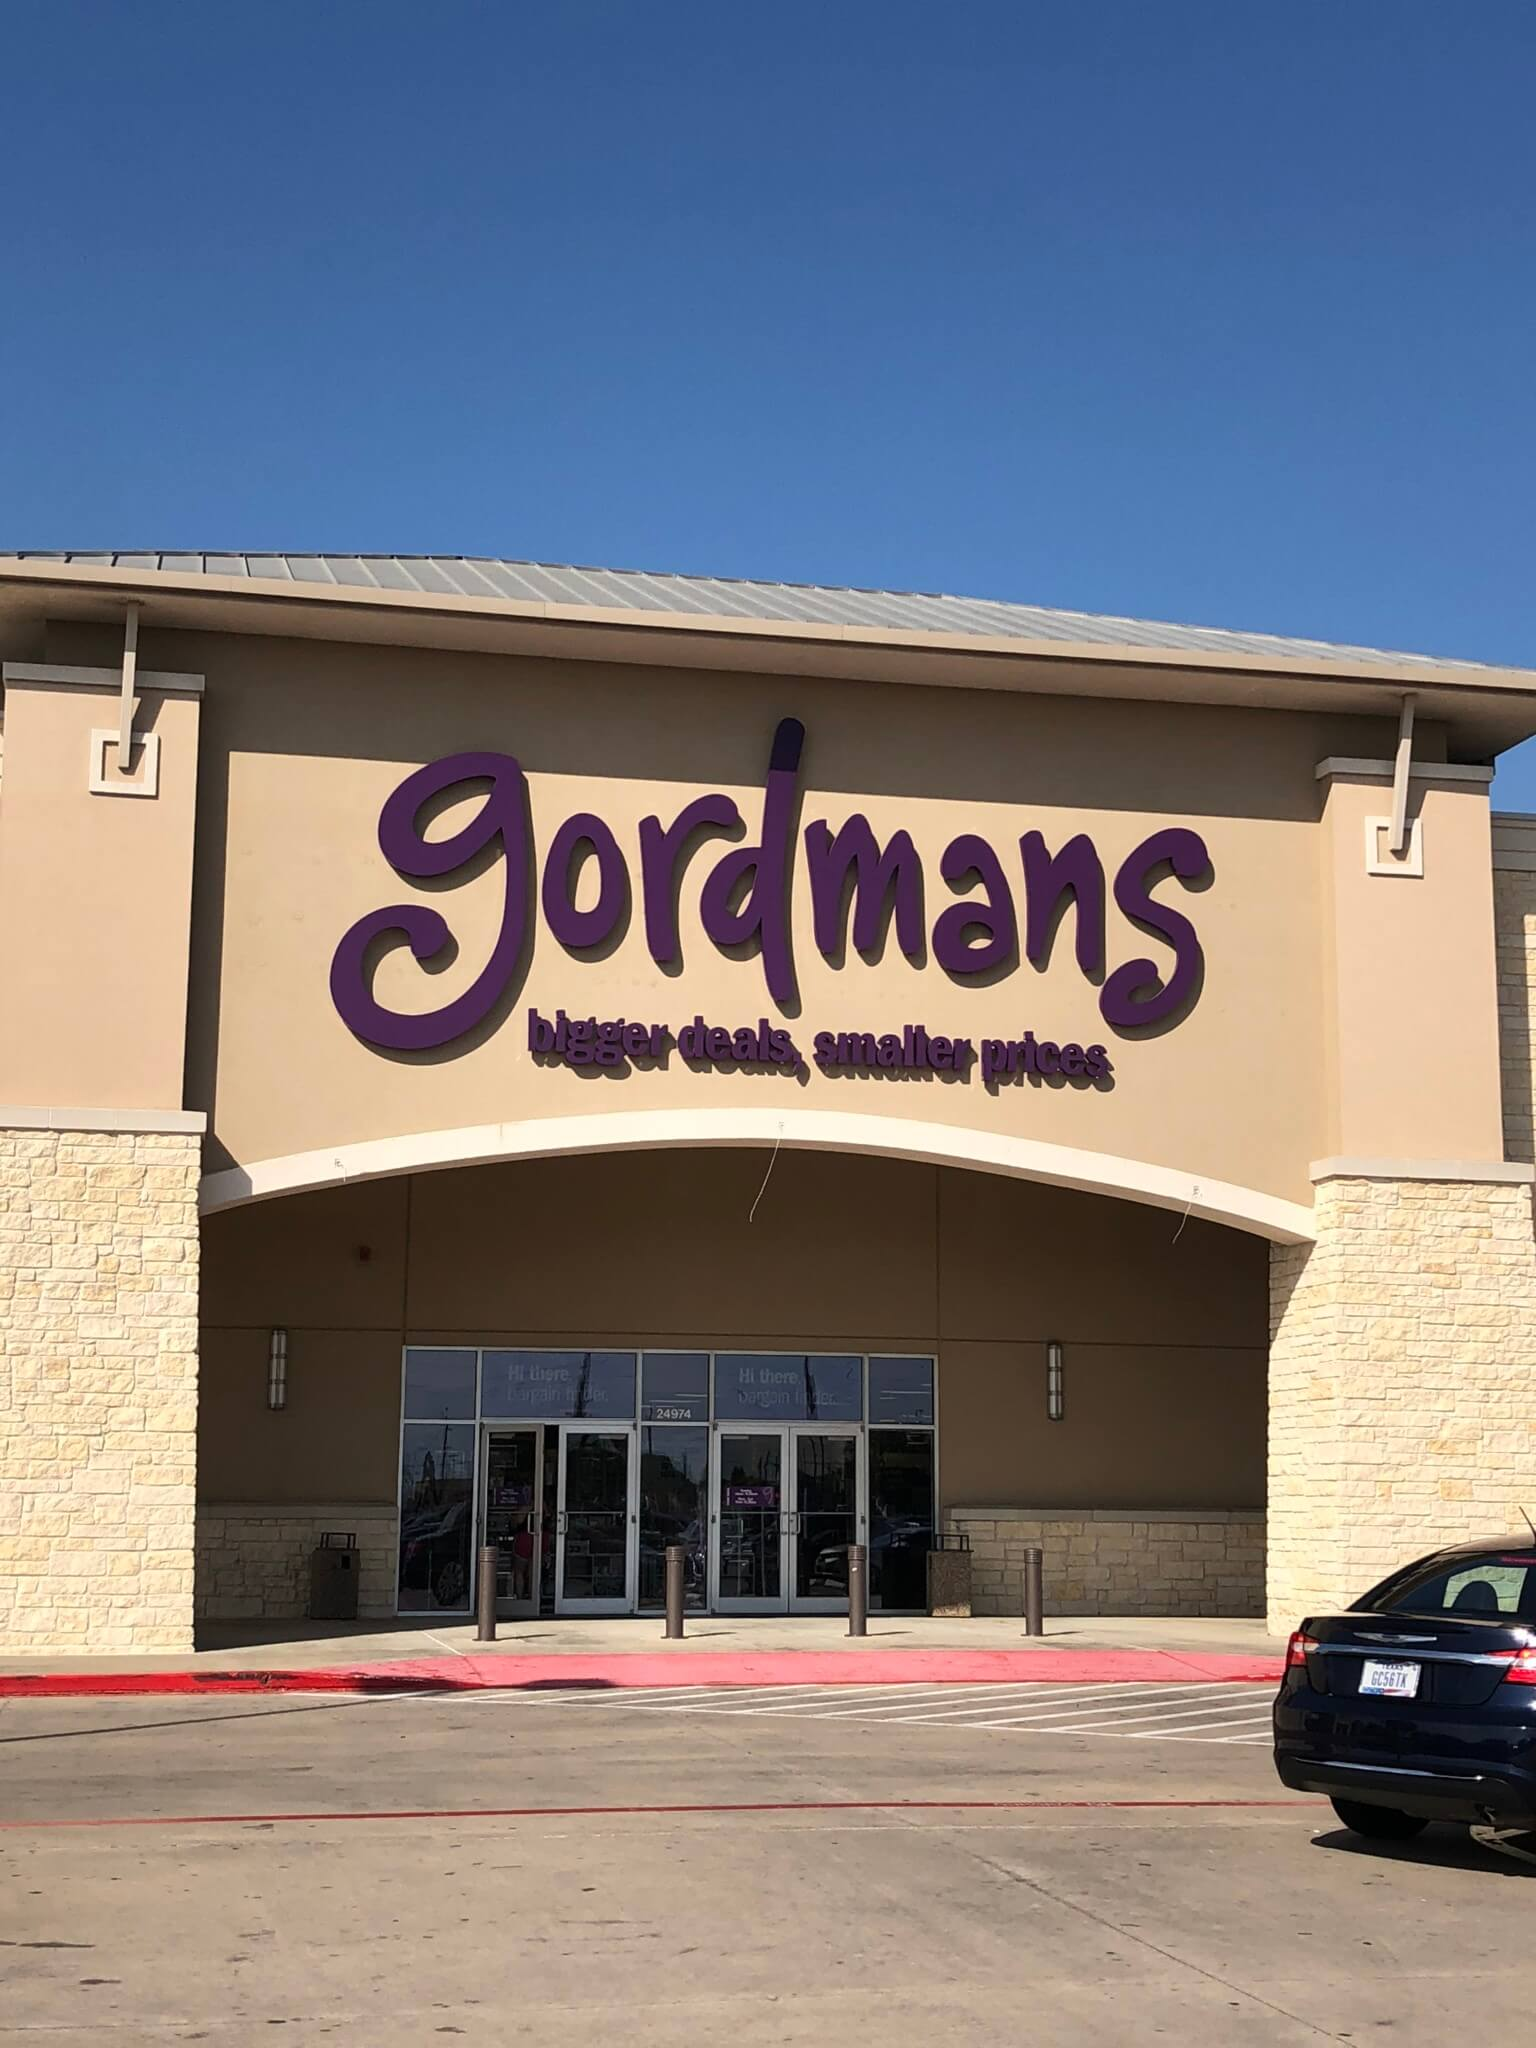 Gordmans Clothing: the One Stop Shop for All My Outfit Needs